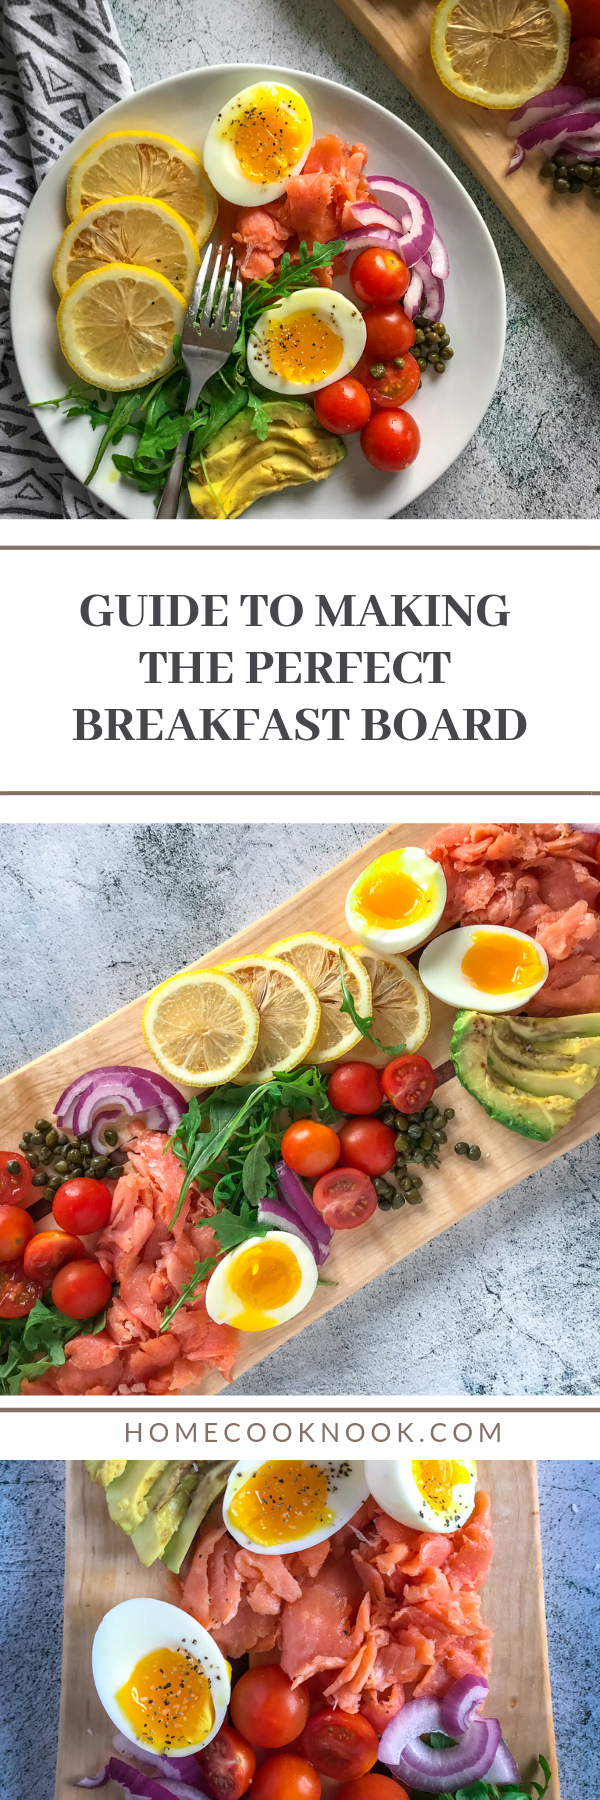 The Perfect Breakfast Board: A Tutorial